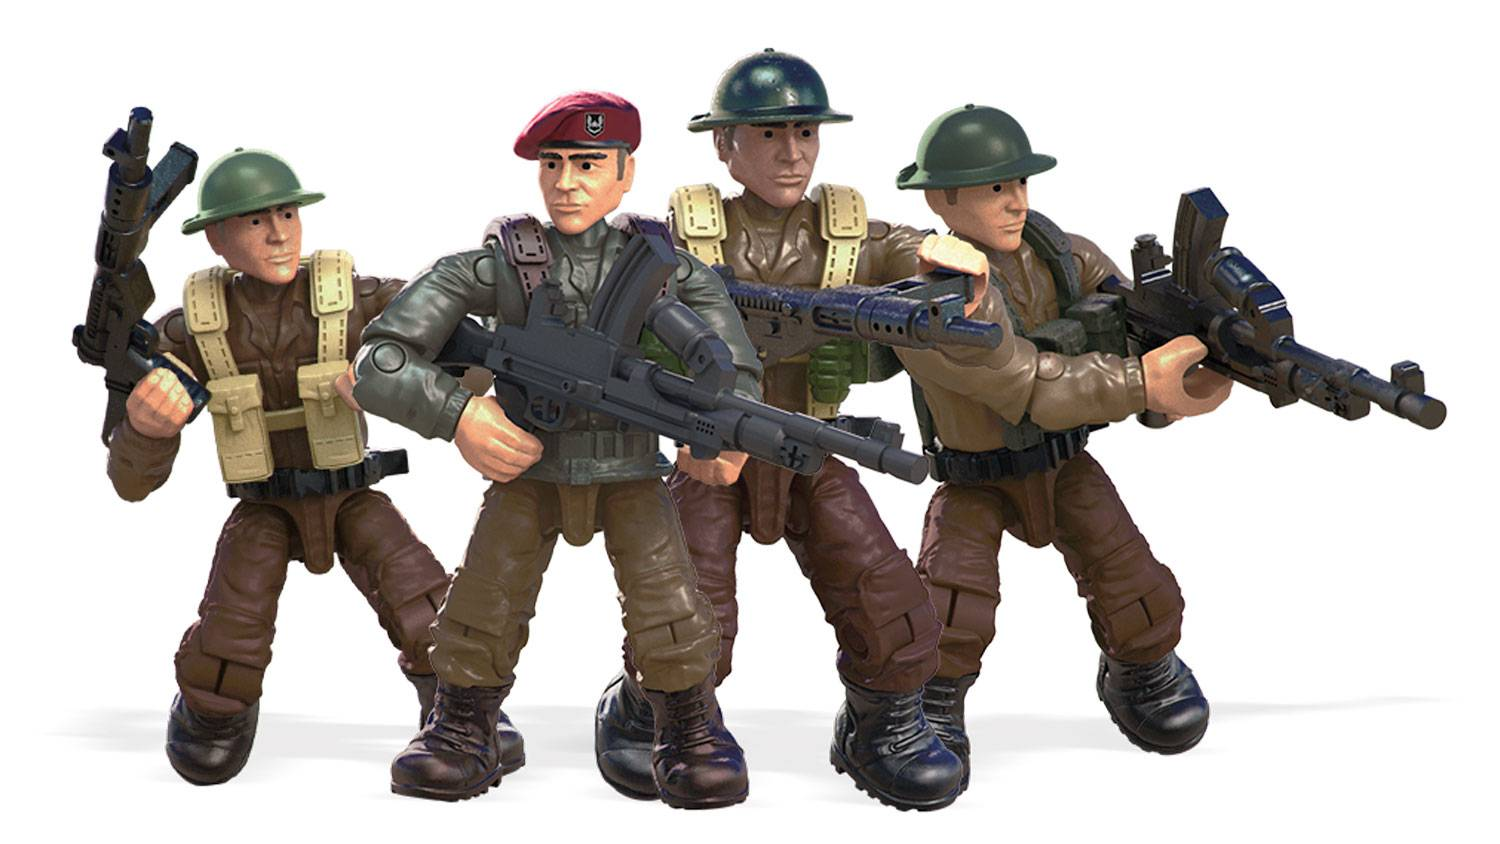 Legends: Allied Soldiers